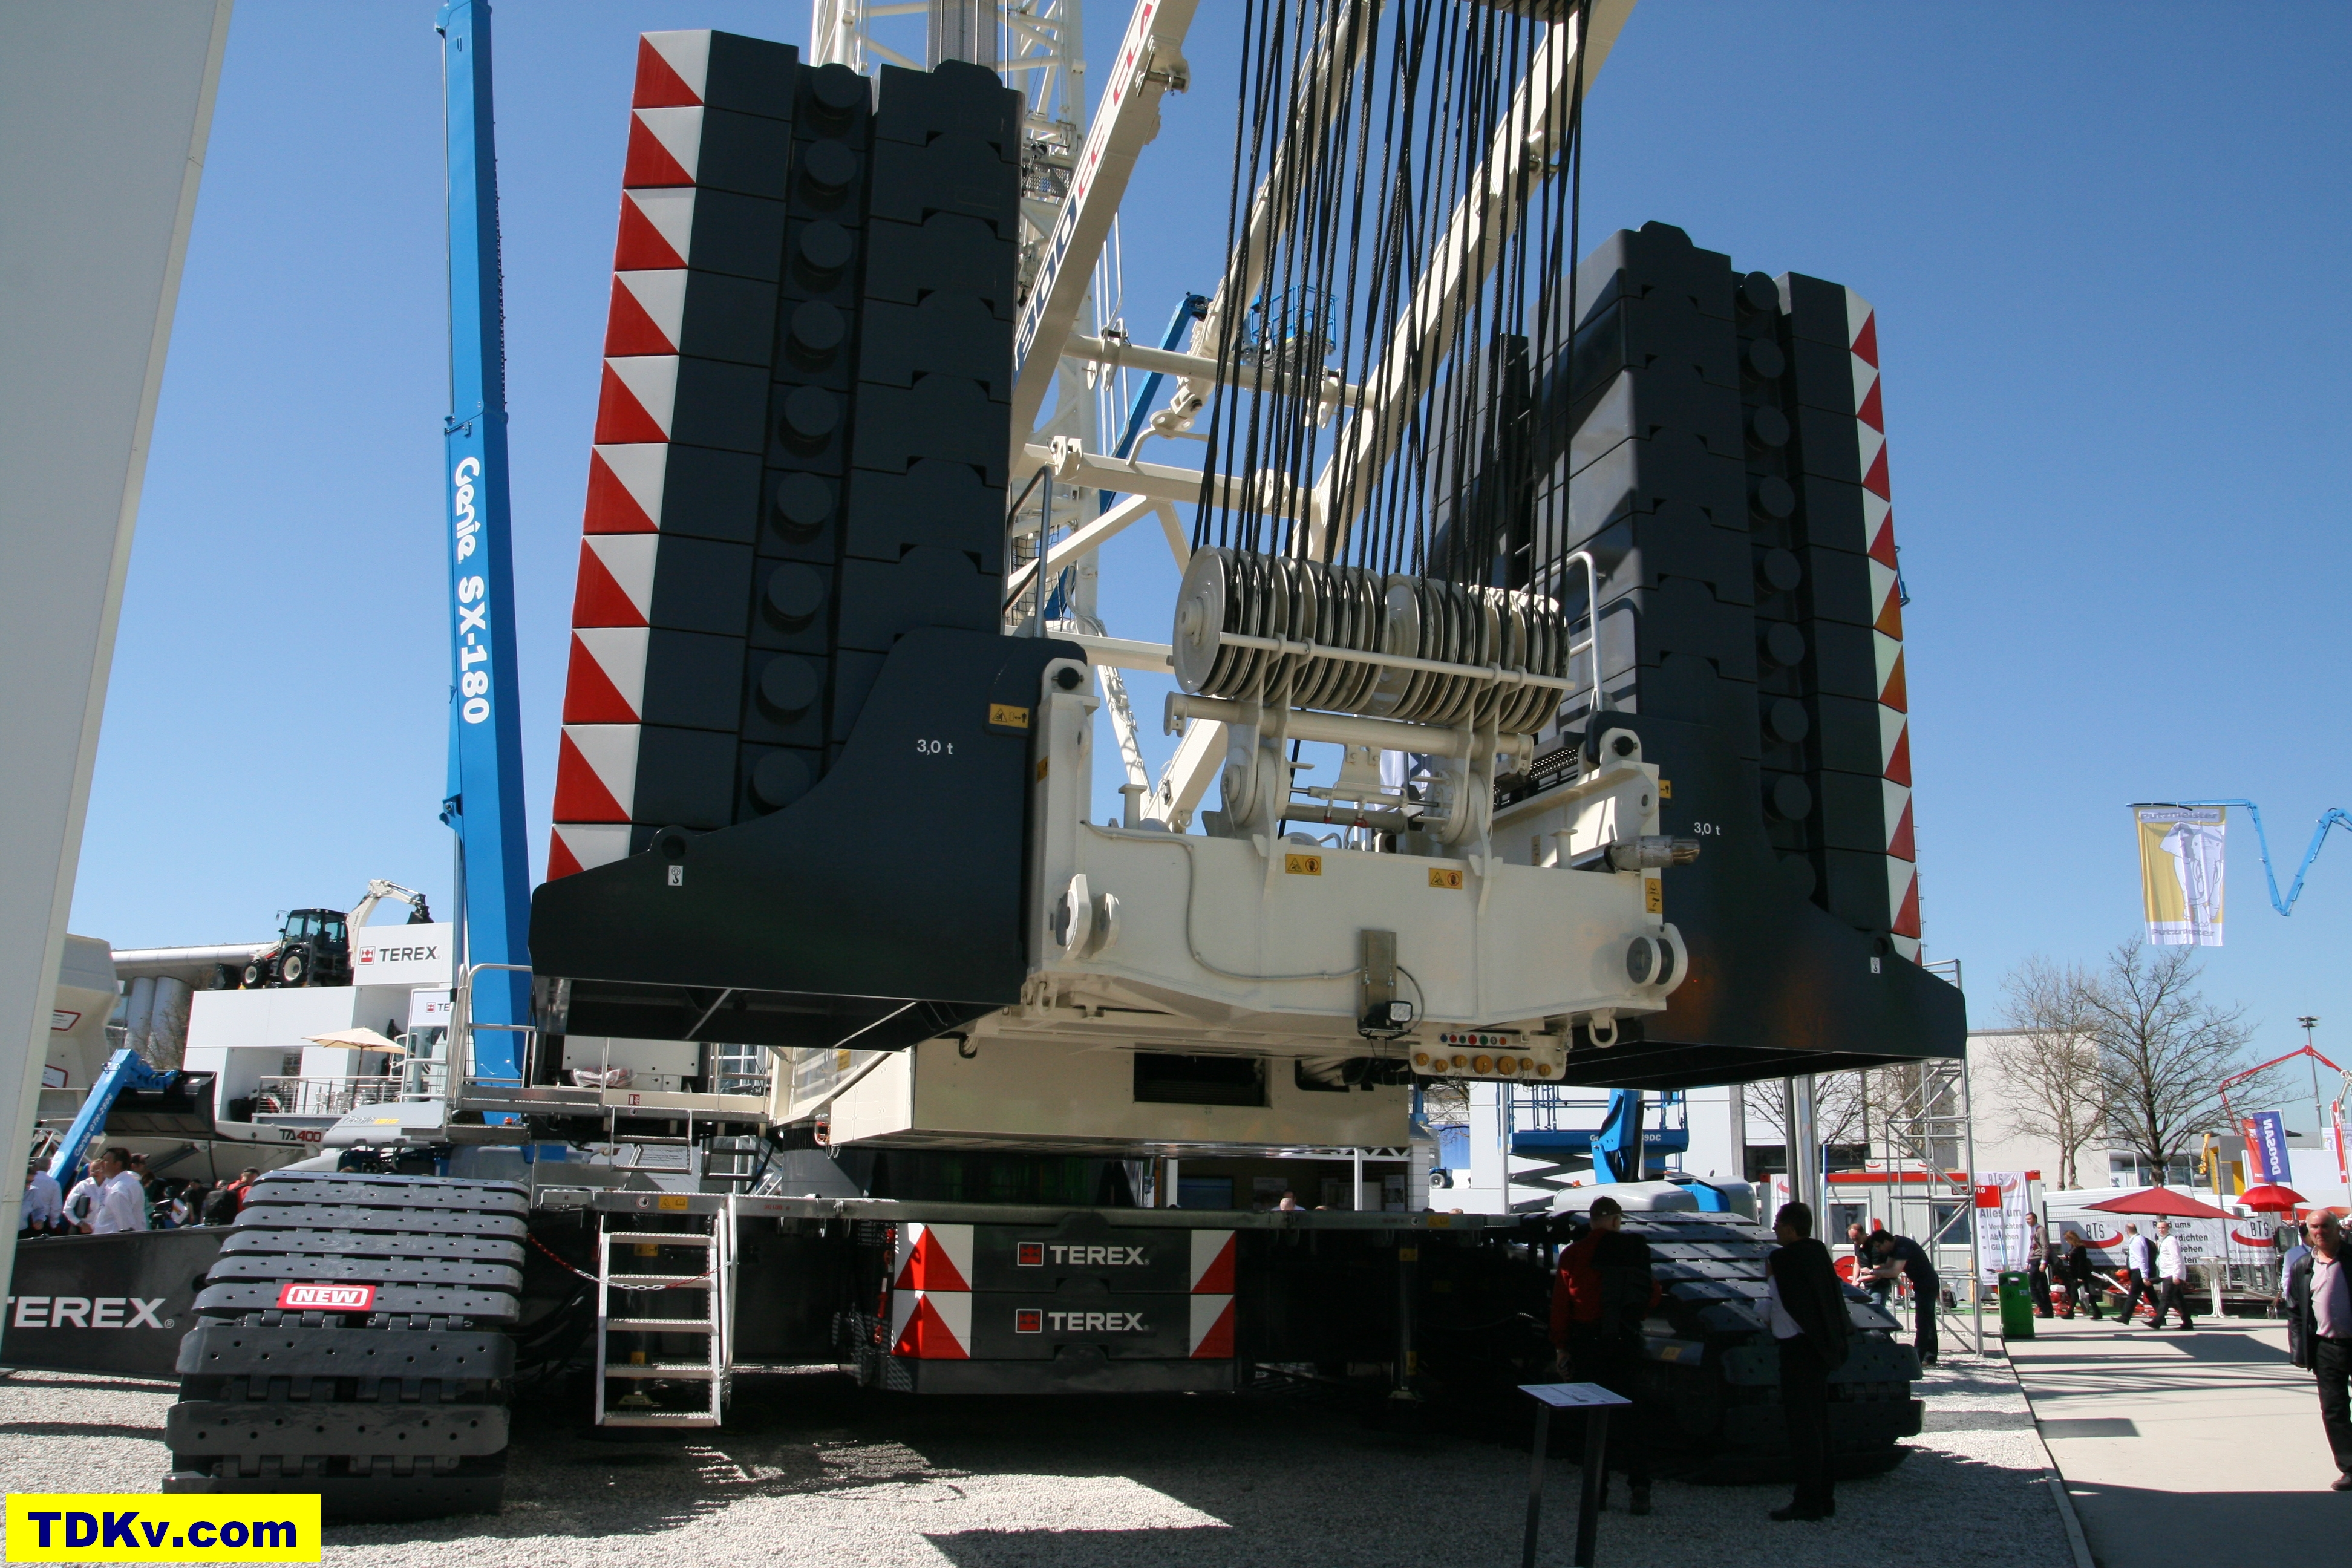 Terex Superlift 3800 Crawler crane